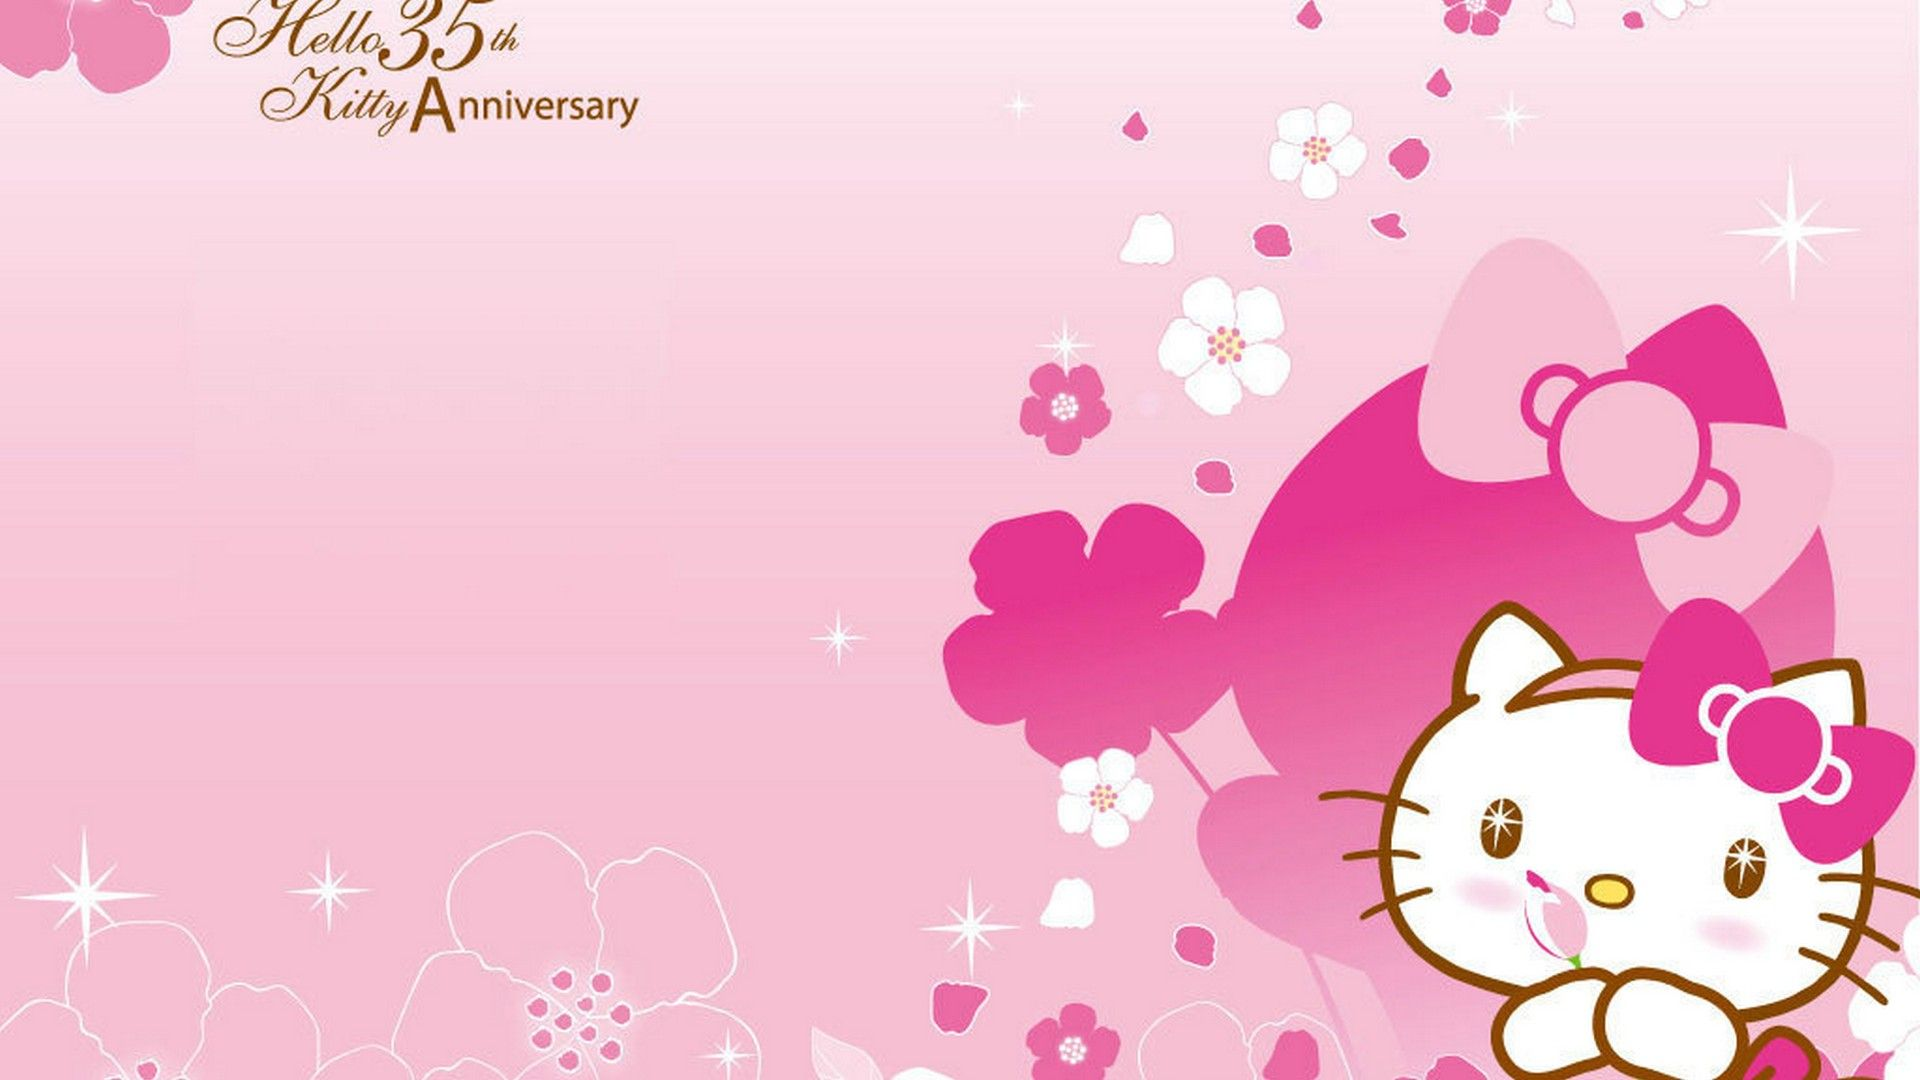 Hello Kitty Desktop Backgrounds Hd Hello Kitty Backgrounds Hello Kitty Wallpaper Hd Hello Kitty Wallpaper